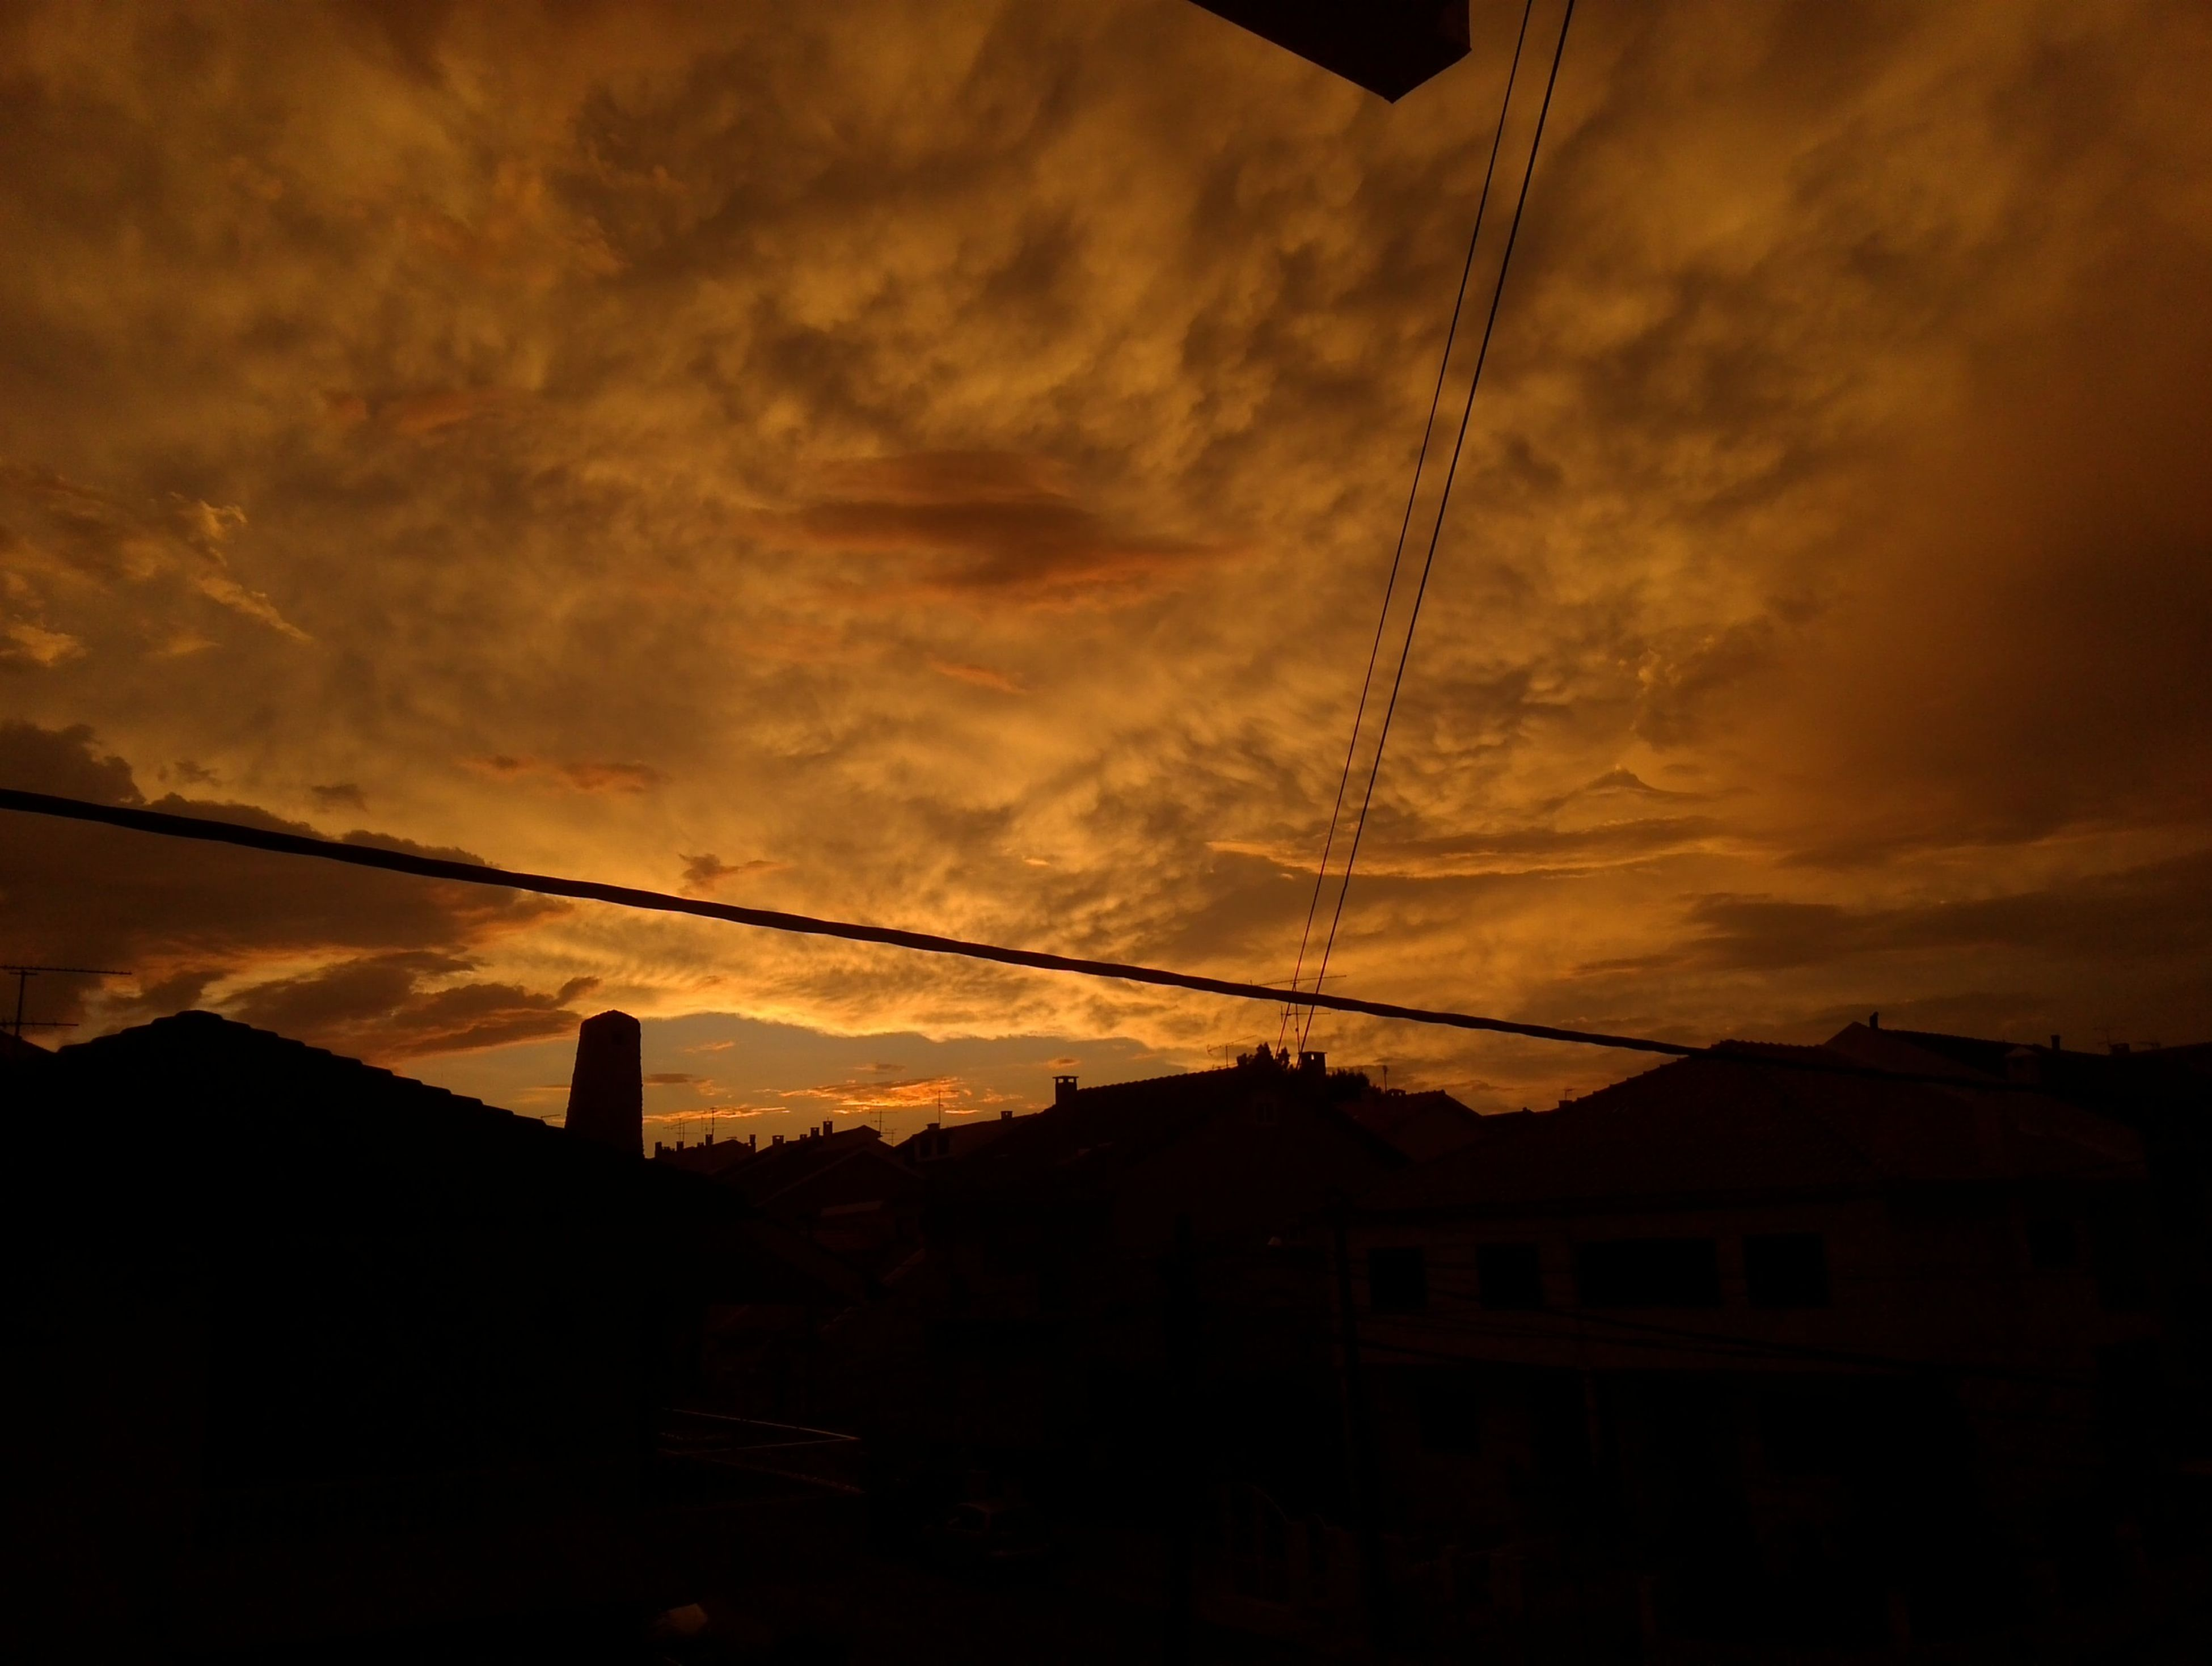 sunset, sky, silhouette, building exterior, built structure, architecture, cloud - sky, power line, house, cloudy, low angle view, orange color, cloud, residential structure, dramatic sky, electricity pylon, beauty in nature, dusk, scenics, nature